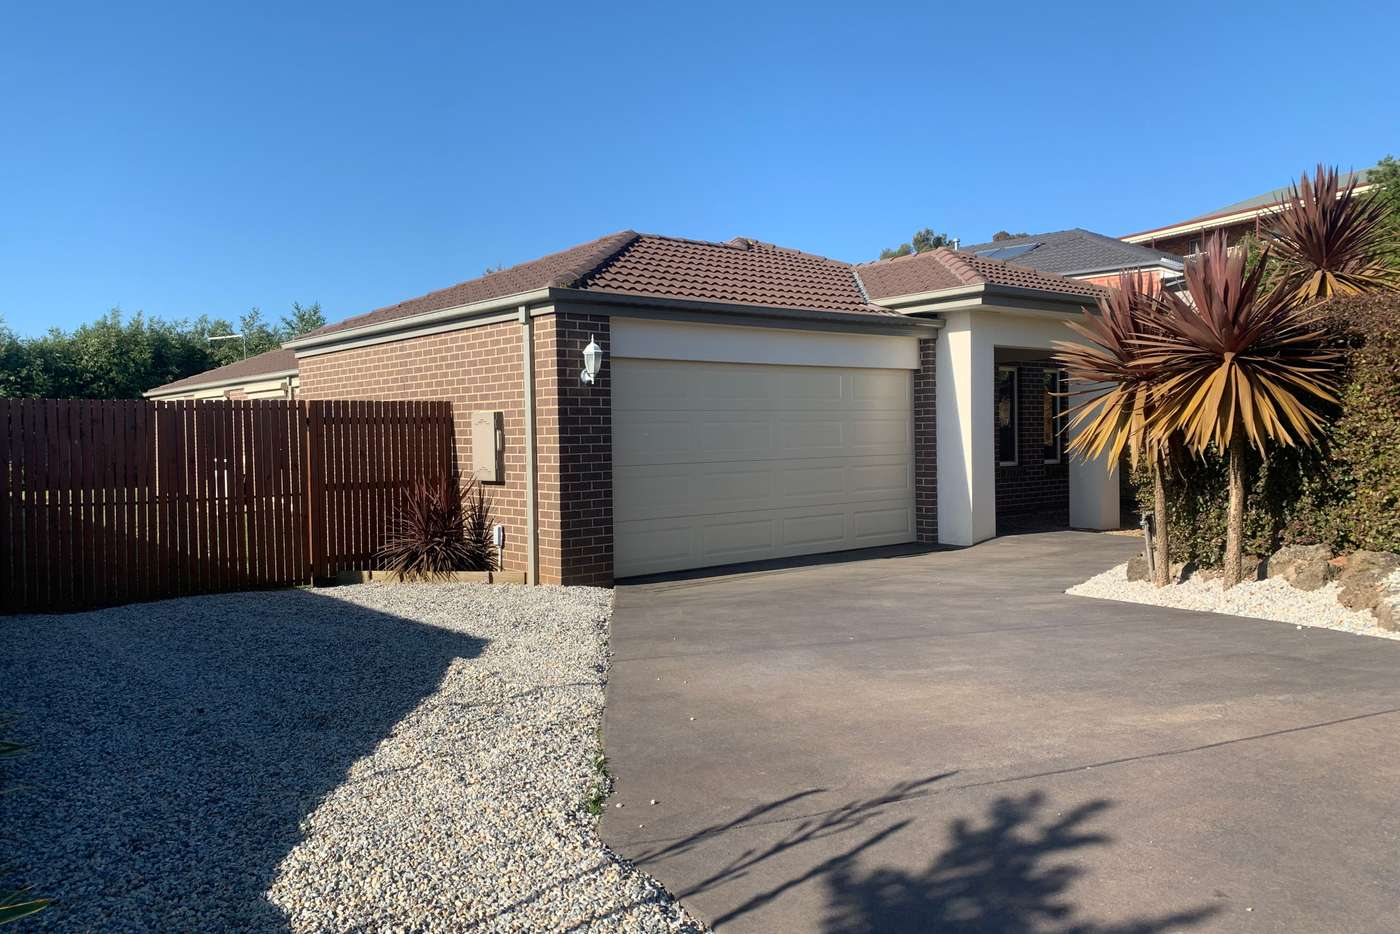 Main view of Homely house listing, 26 Hatfield Drive, Drouin VIC 3818